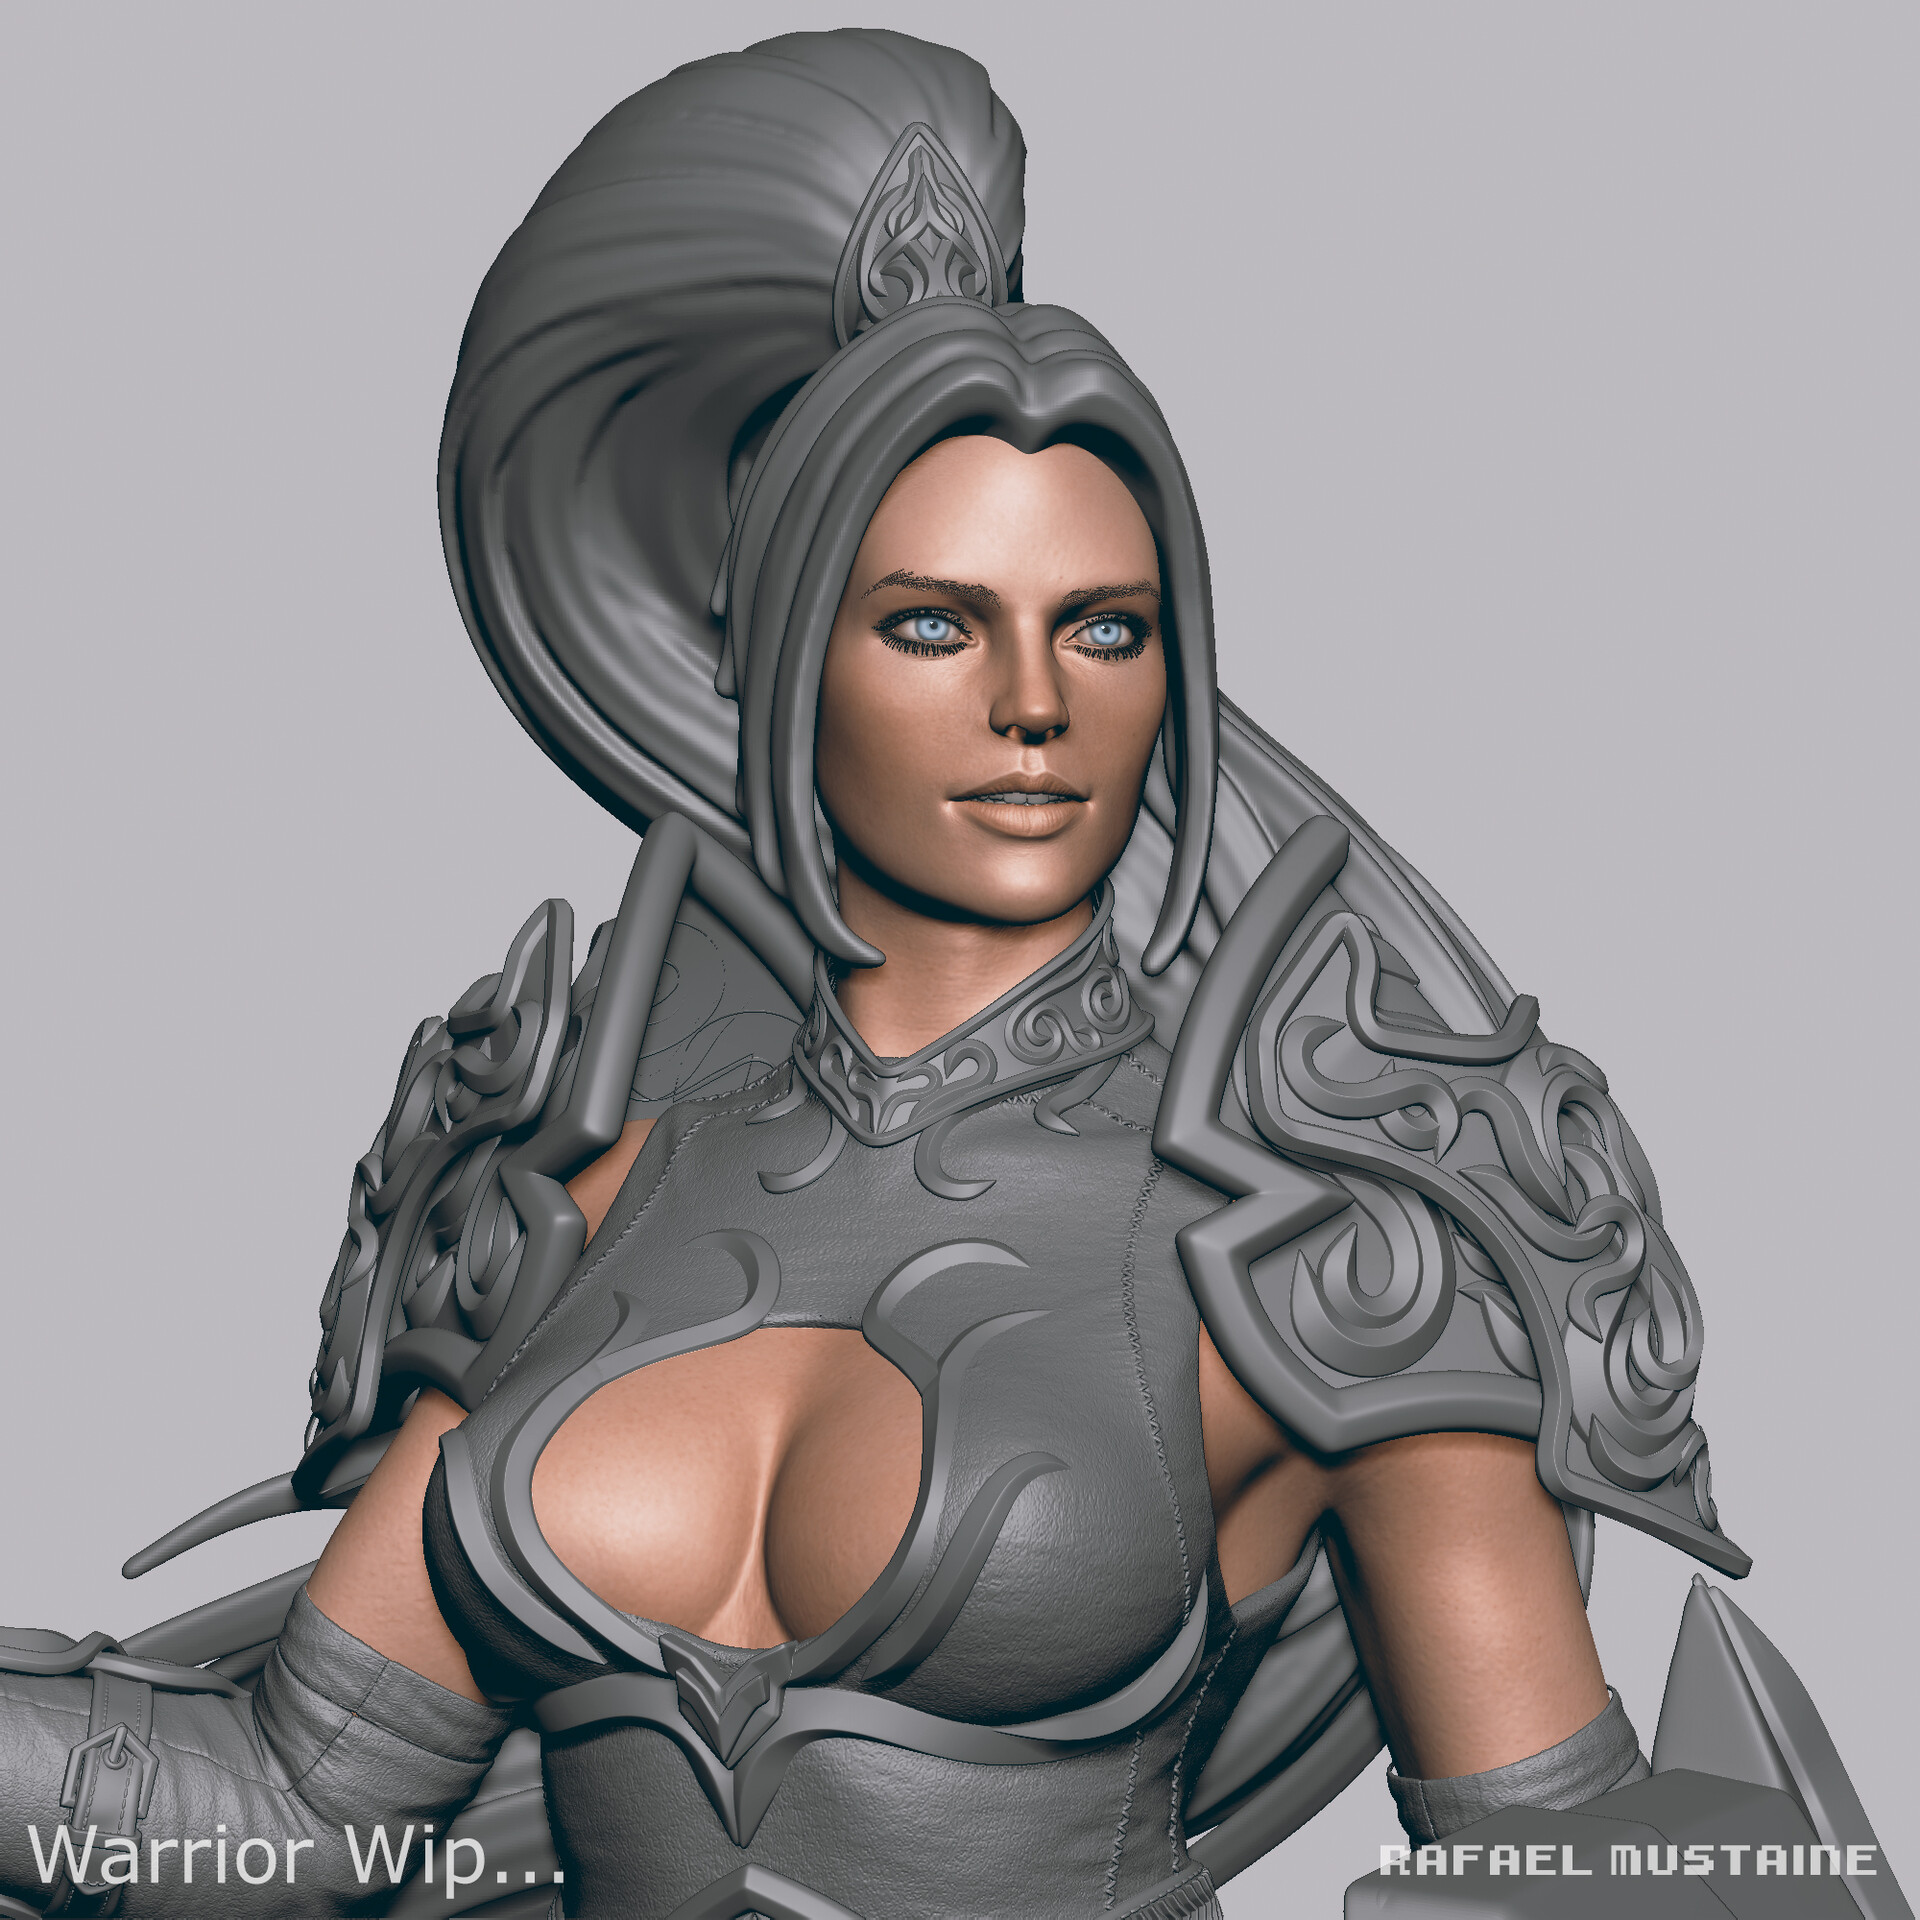 Warrior Concept art - Wip